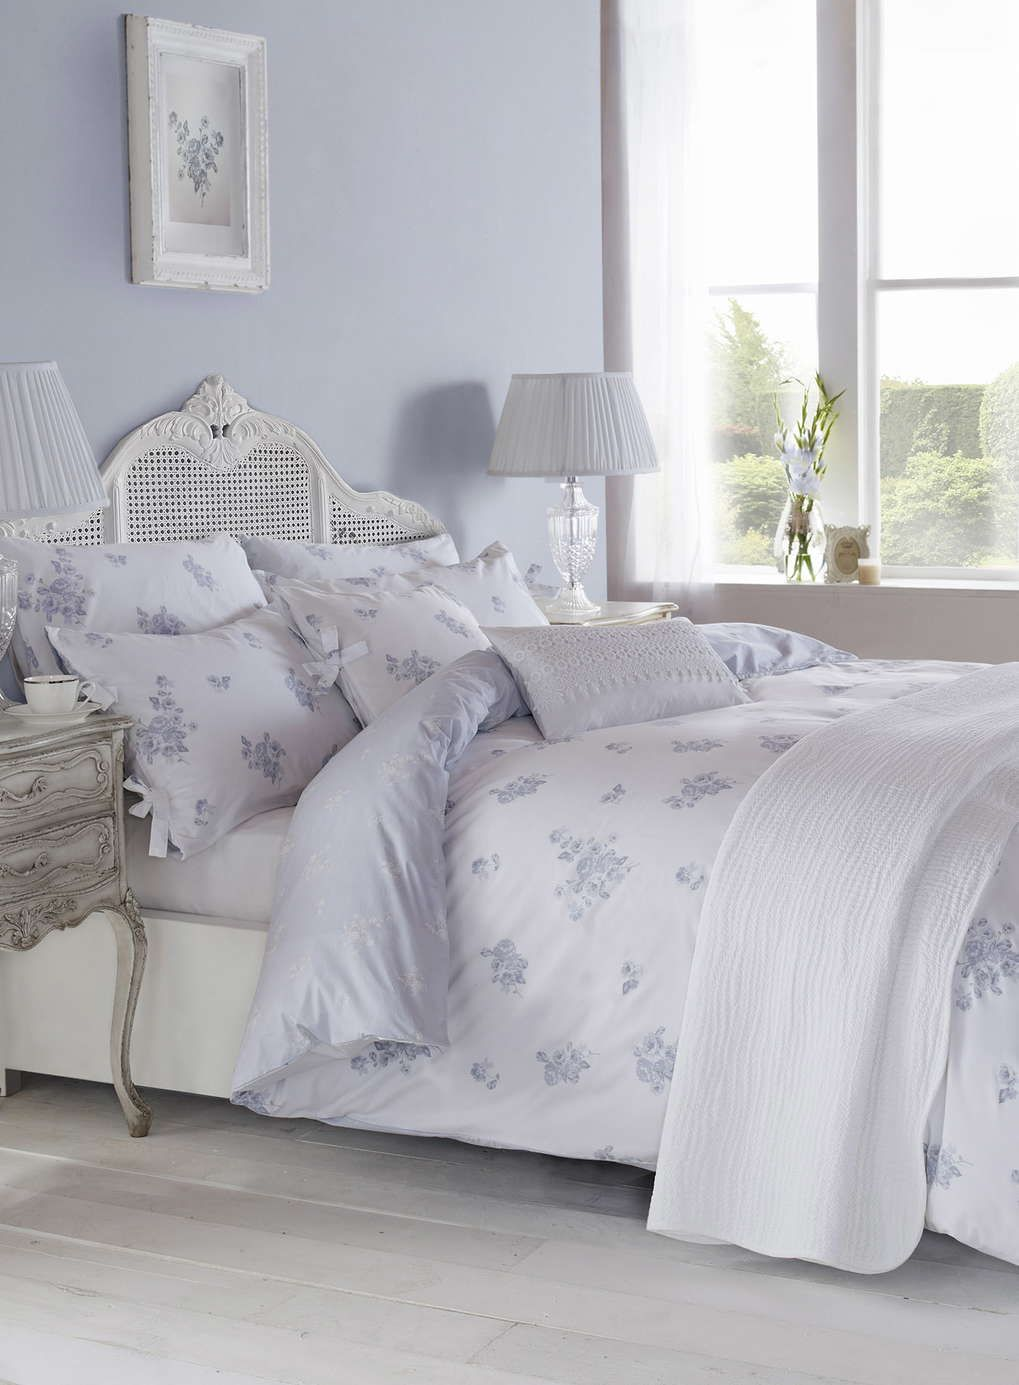 Holly Willoughby Neve Bedding Home Bedding Sets Bed